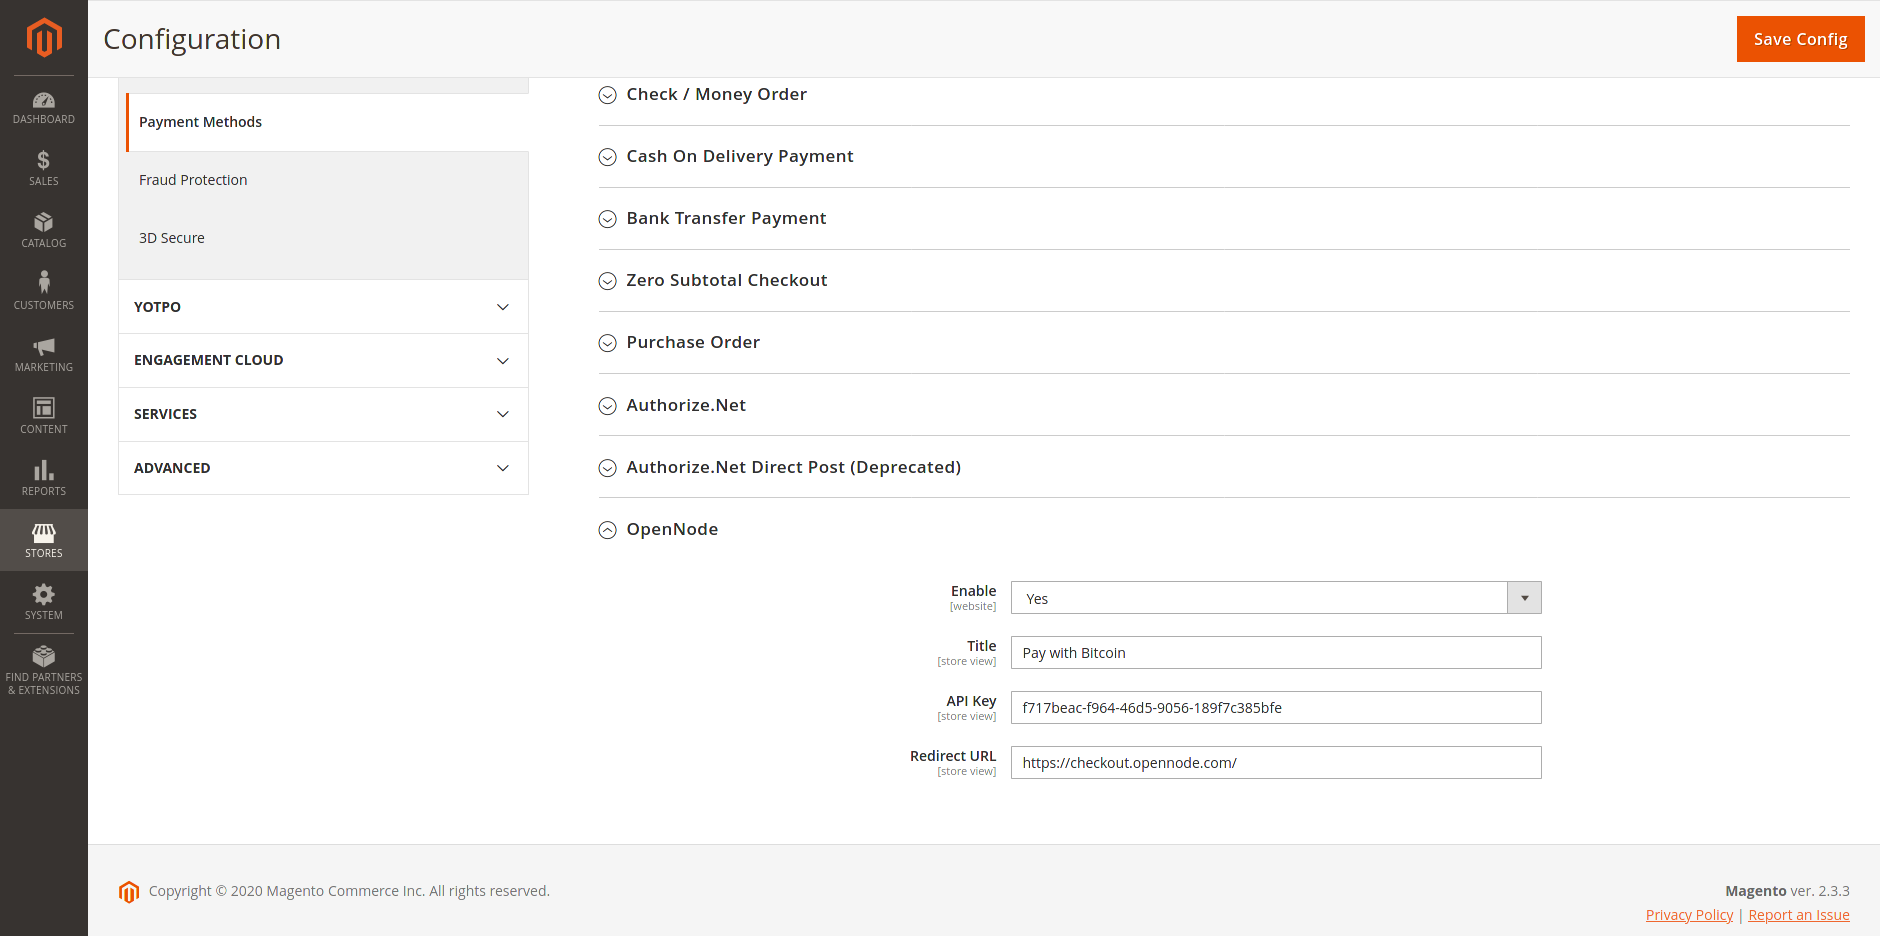 Image of the Magneto dashboard before integrating OpenNode